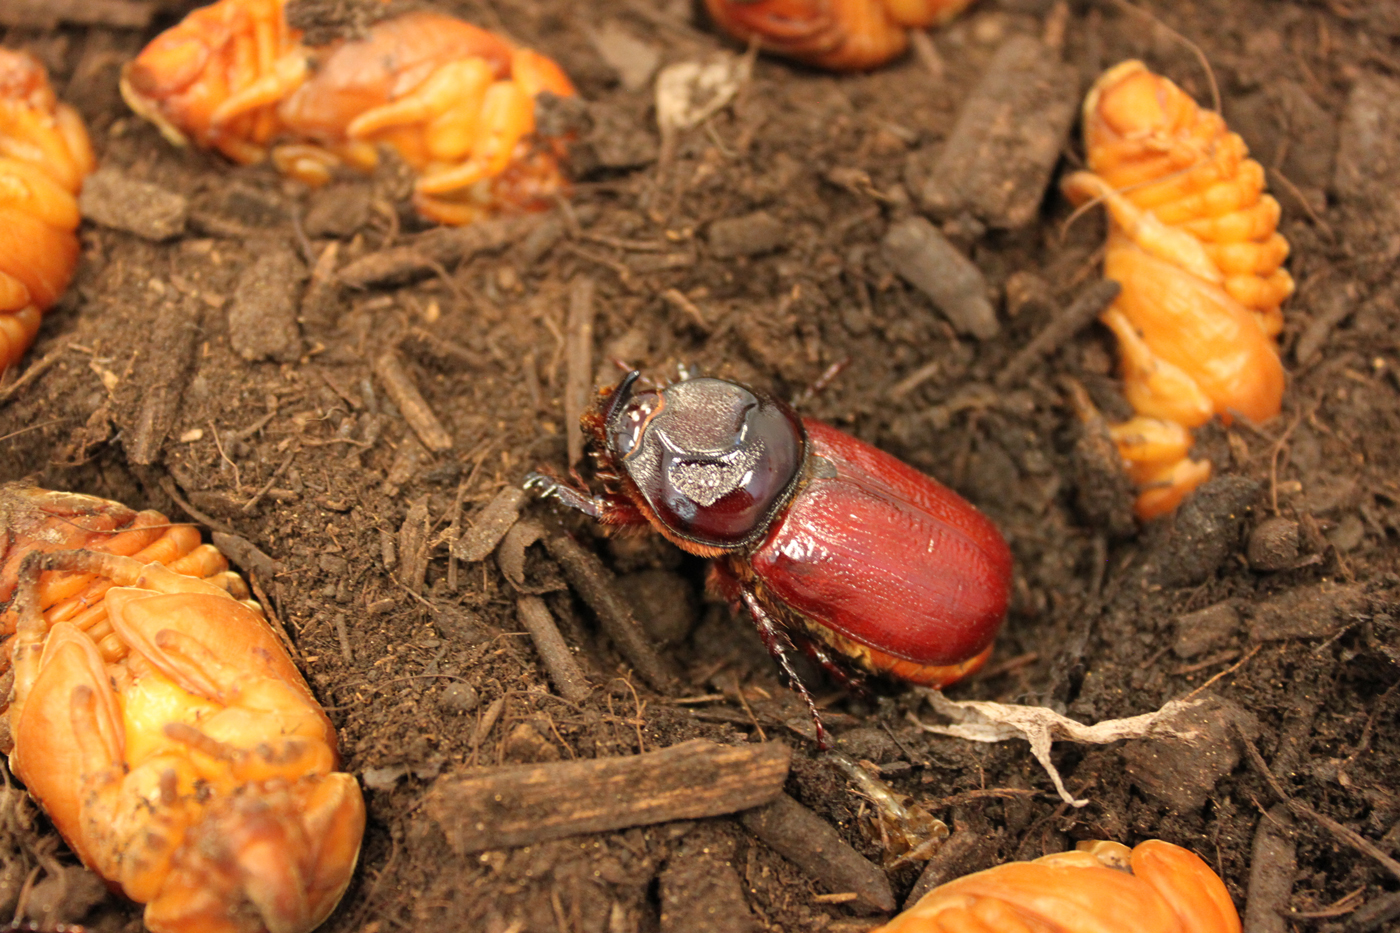 newly emerged Oryctes rhinoceros surrounded by pupae; photo by E.L. Engasser